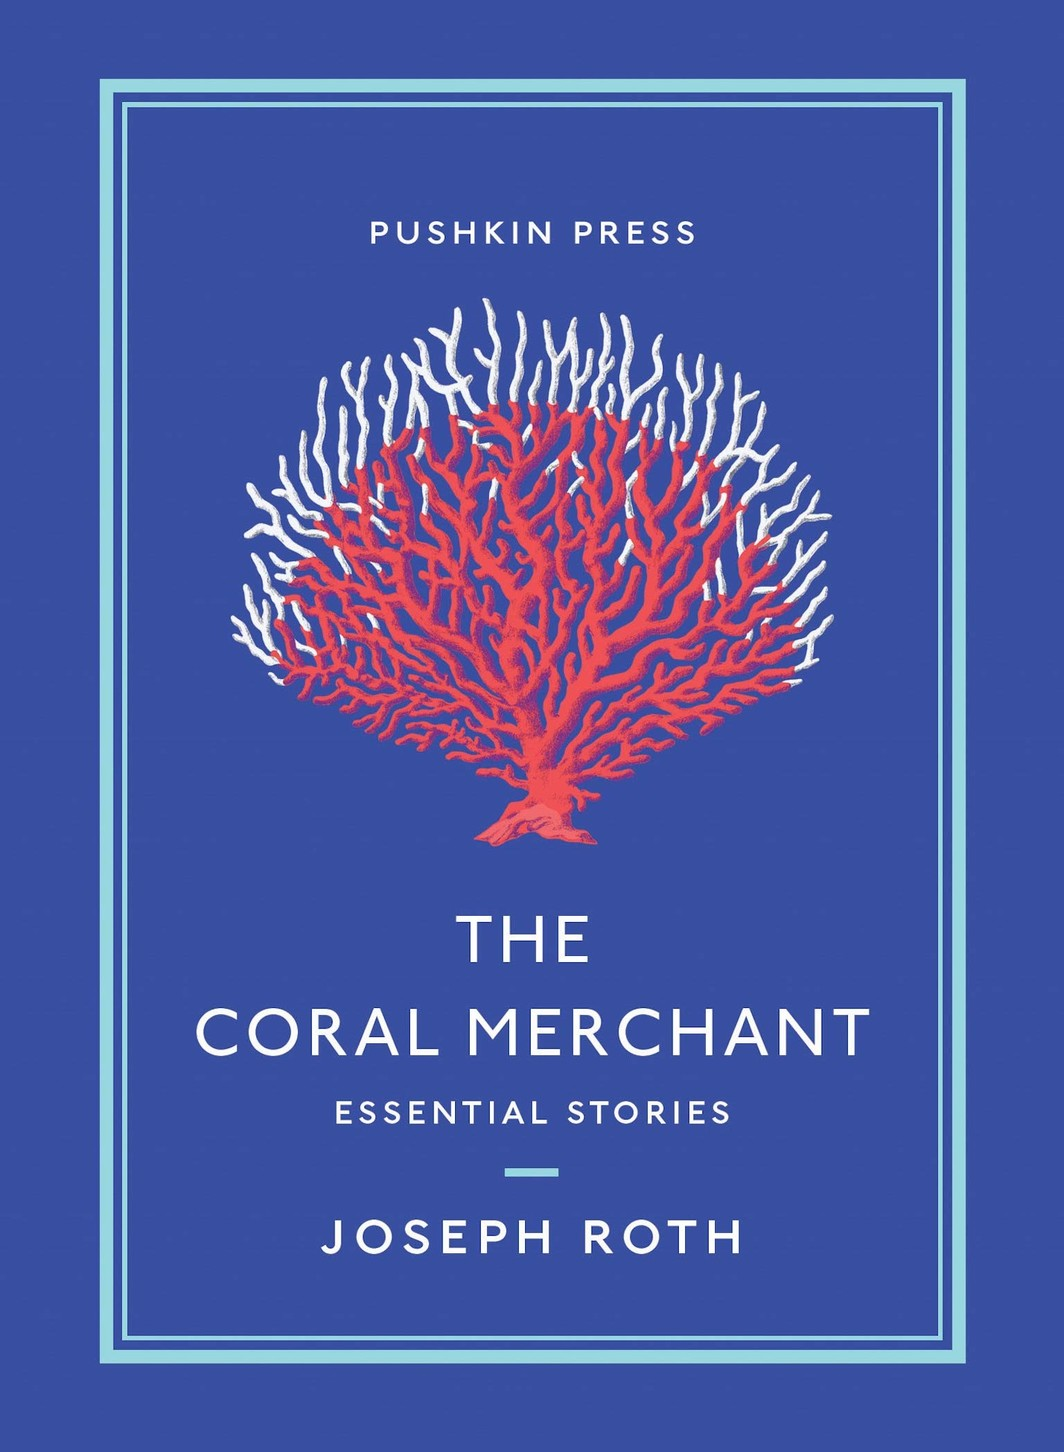 The cover of The Coral Merchant: Essential Stories